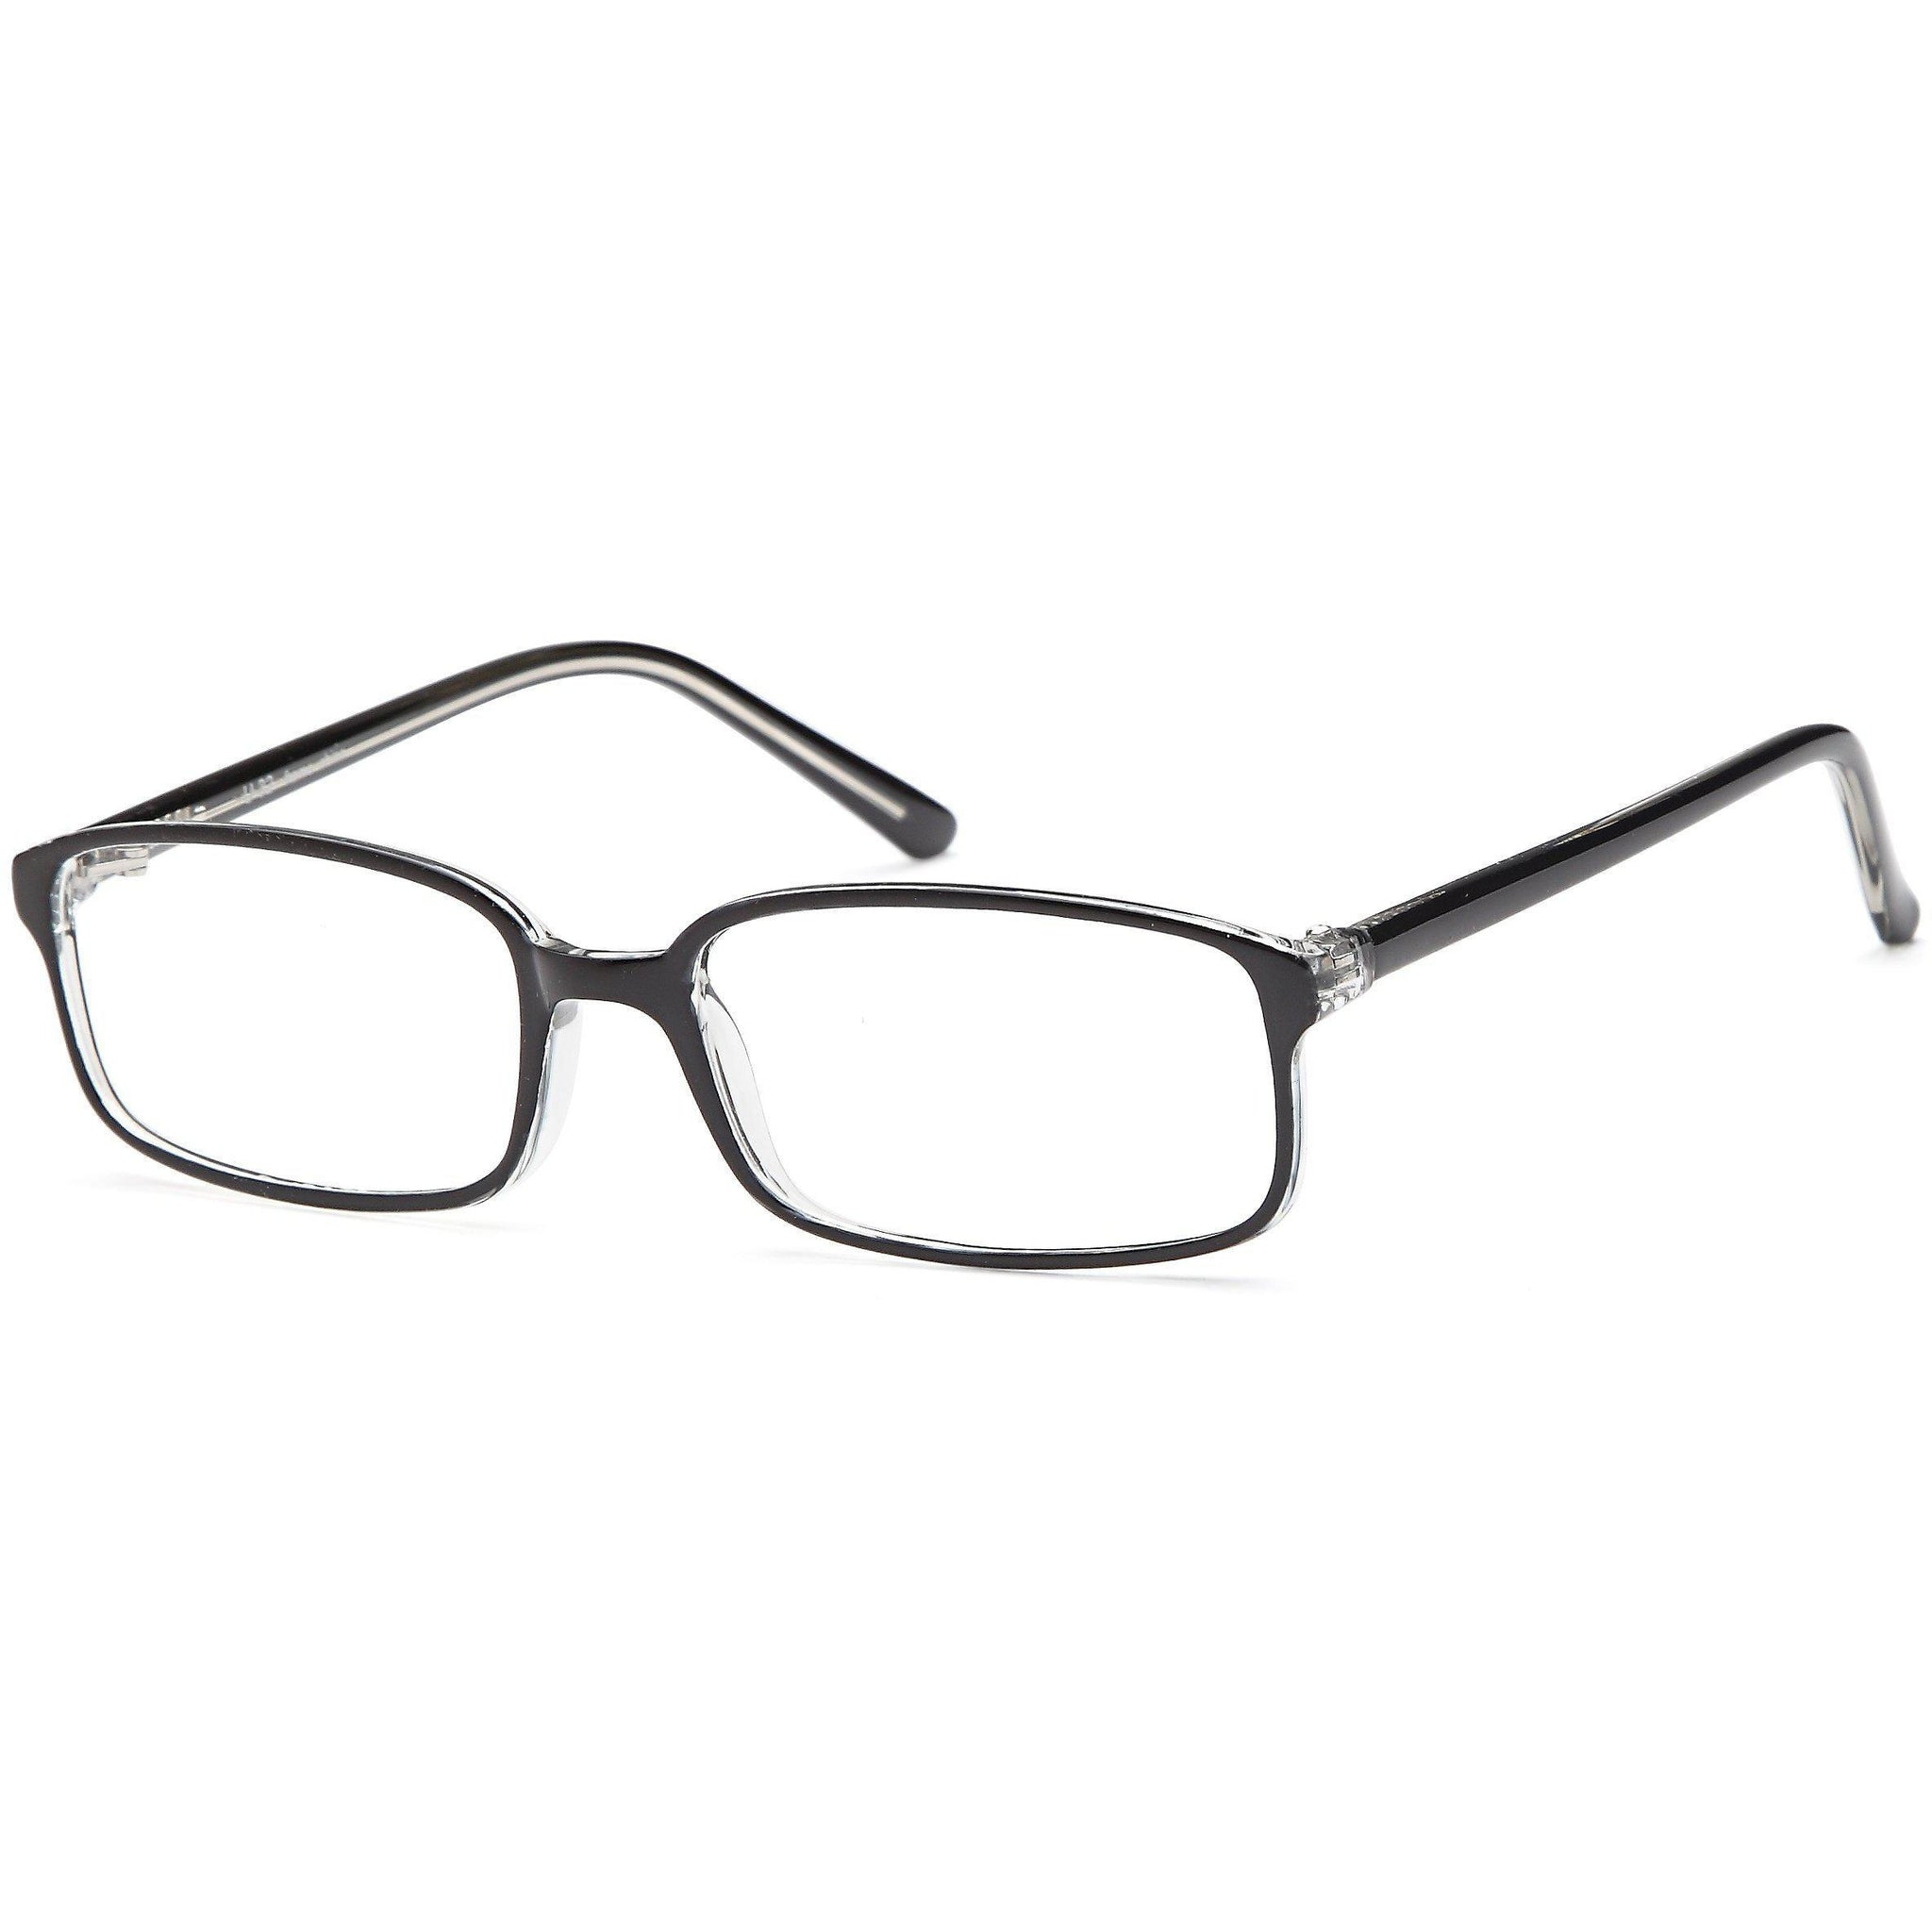 4U Prescription Glasses U 32 Optical Eyeglasses Frame - timetoshade